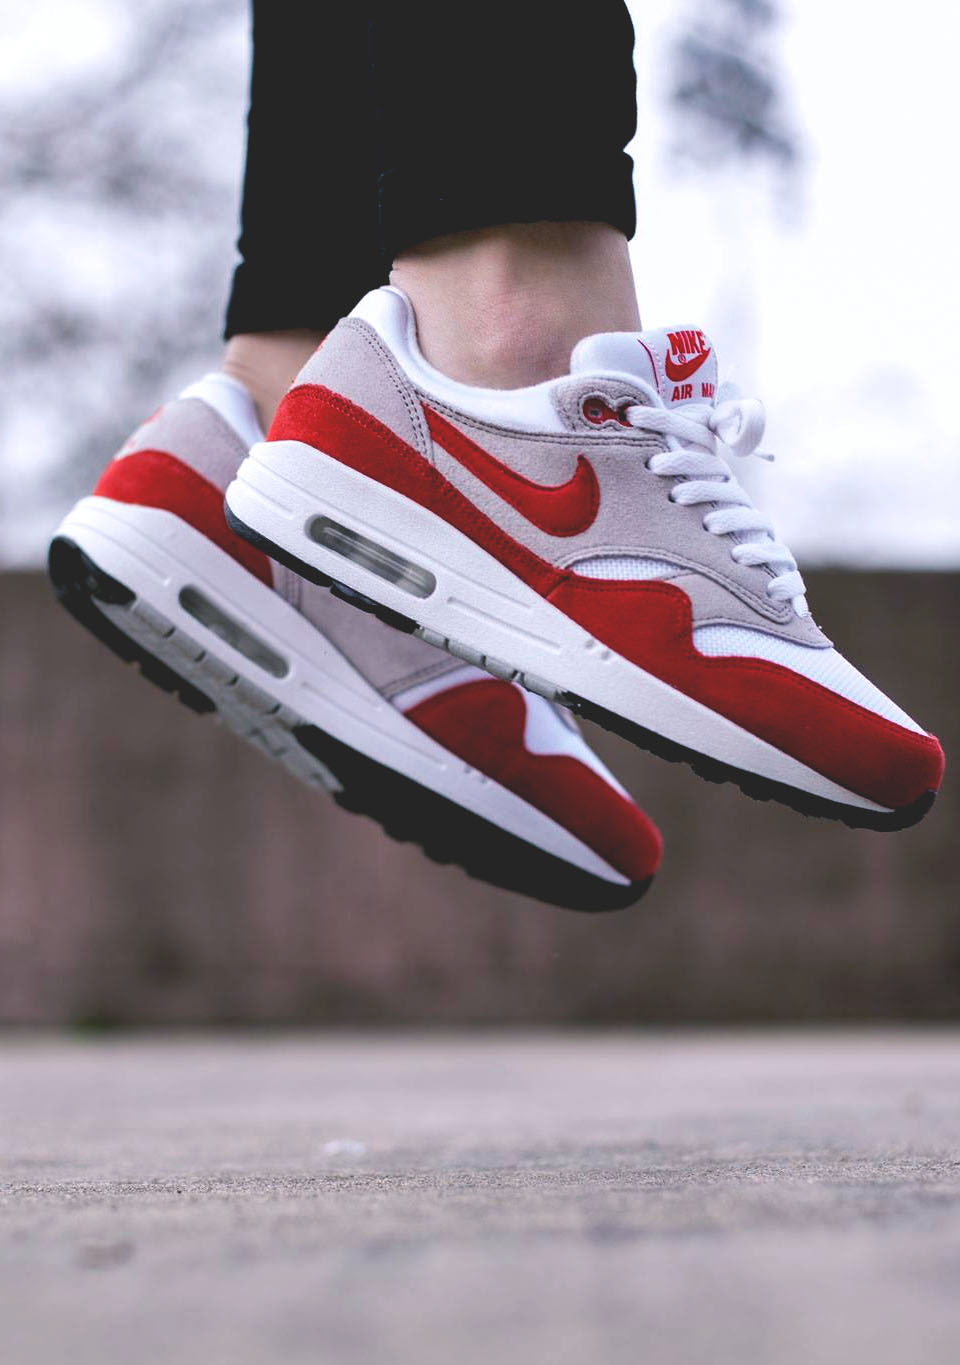 Floating on #airmax1 #womenstyle #sneakers